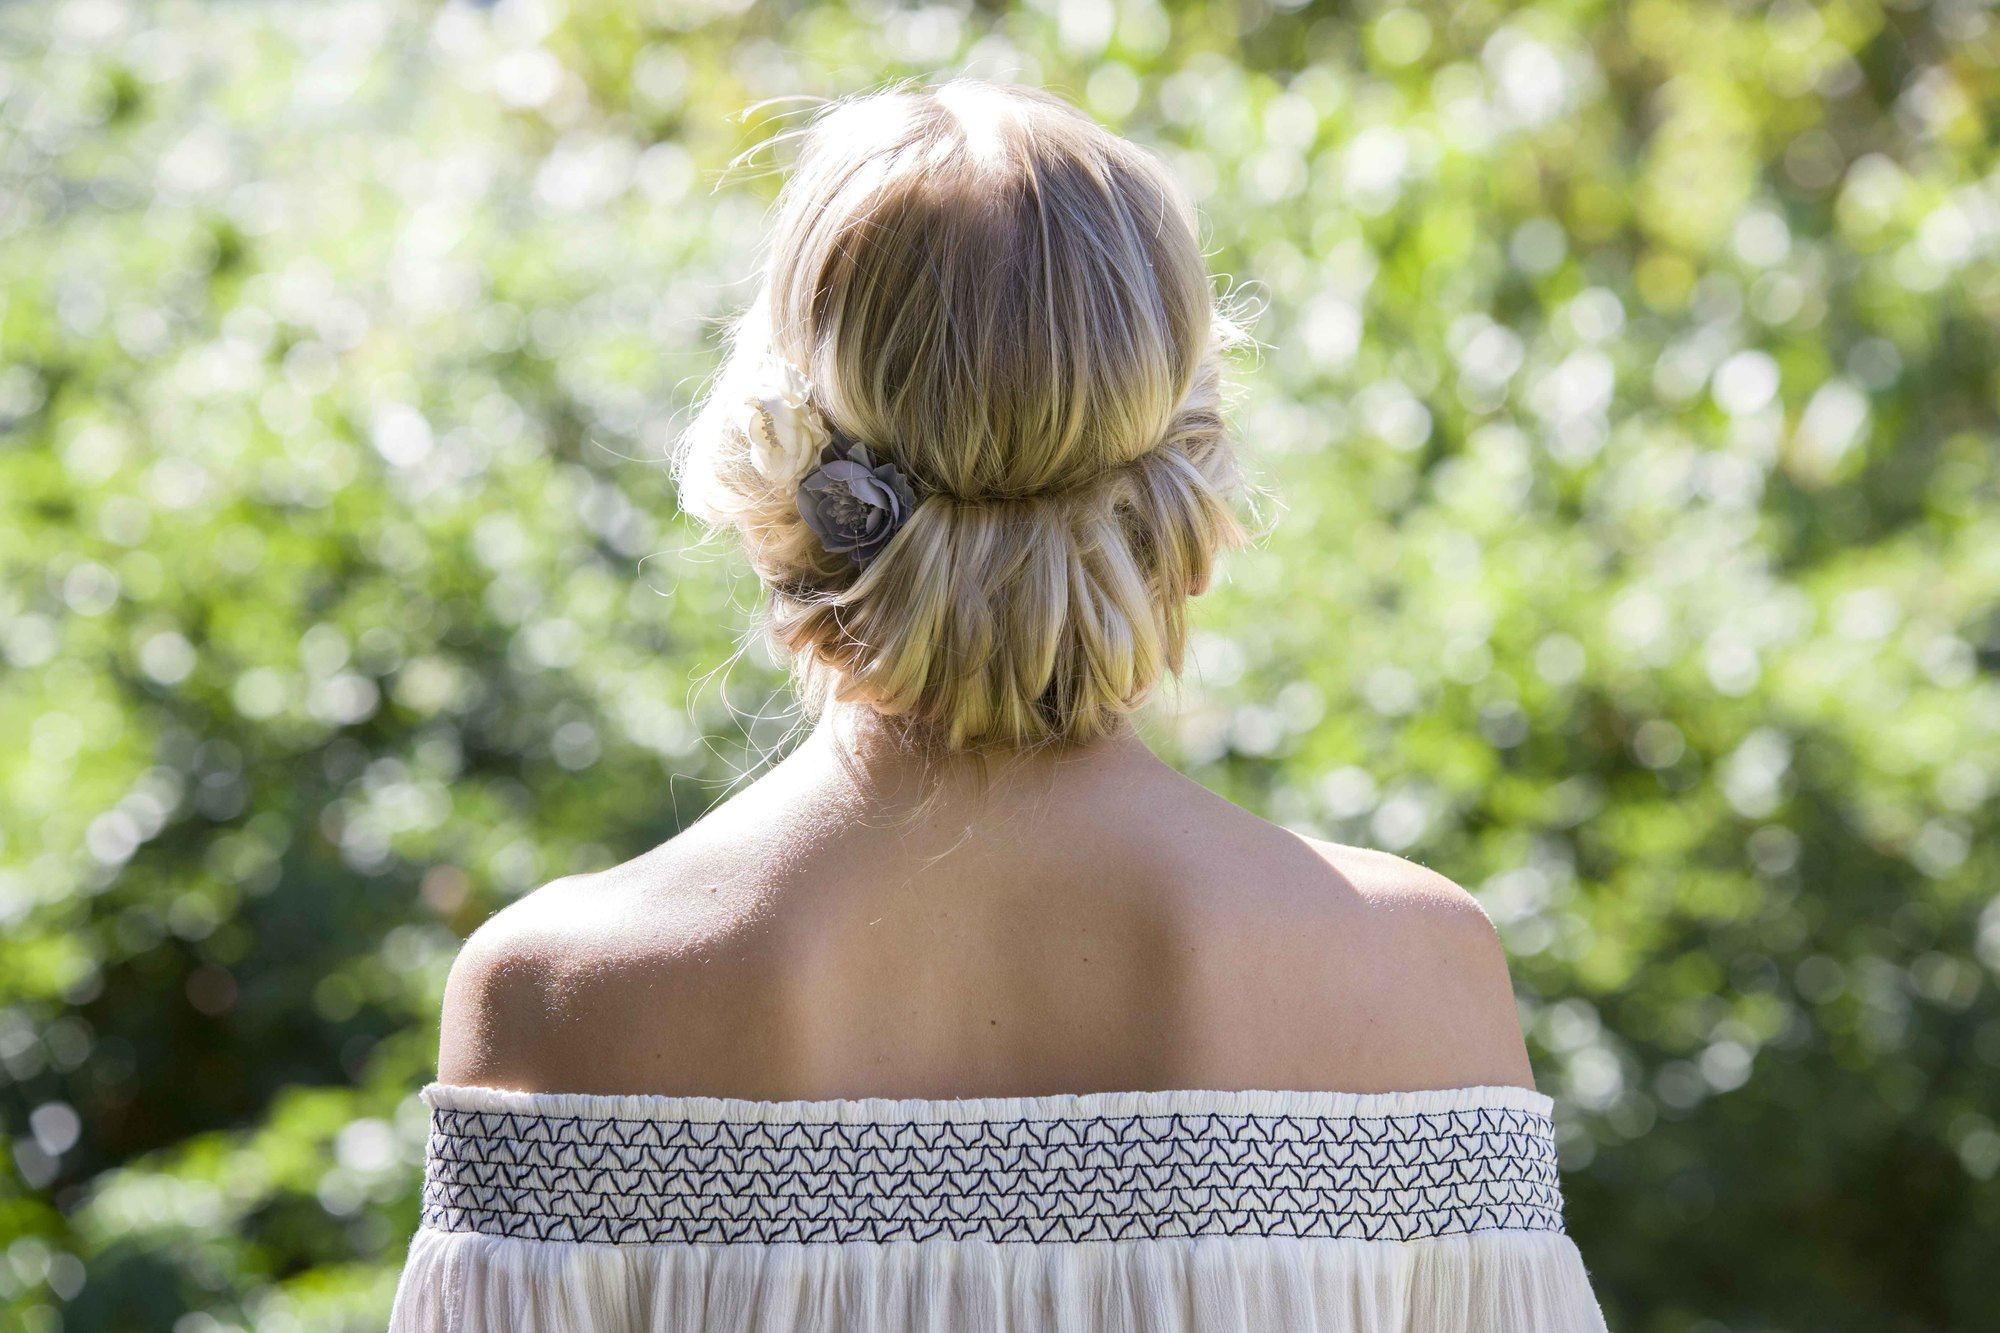 Easy hairstyles for long hair: The back view of a young blonde woman with a headband chignnon AKA cheater's chignon